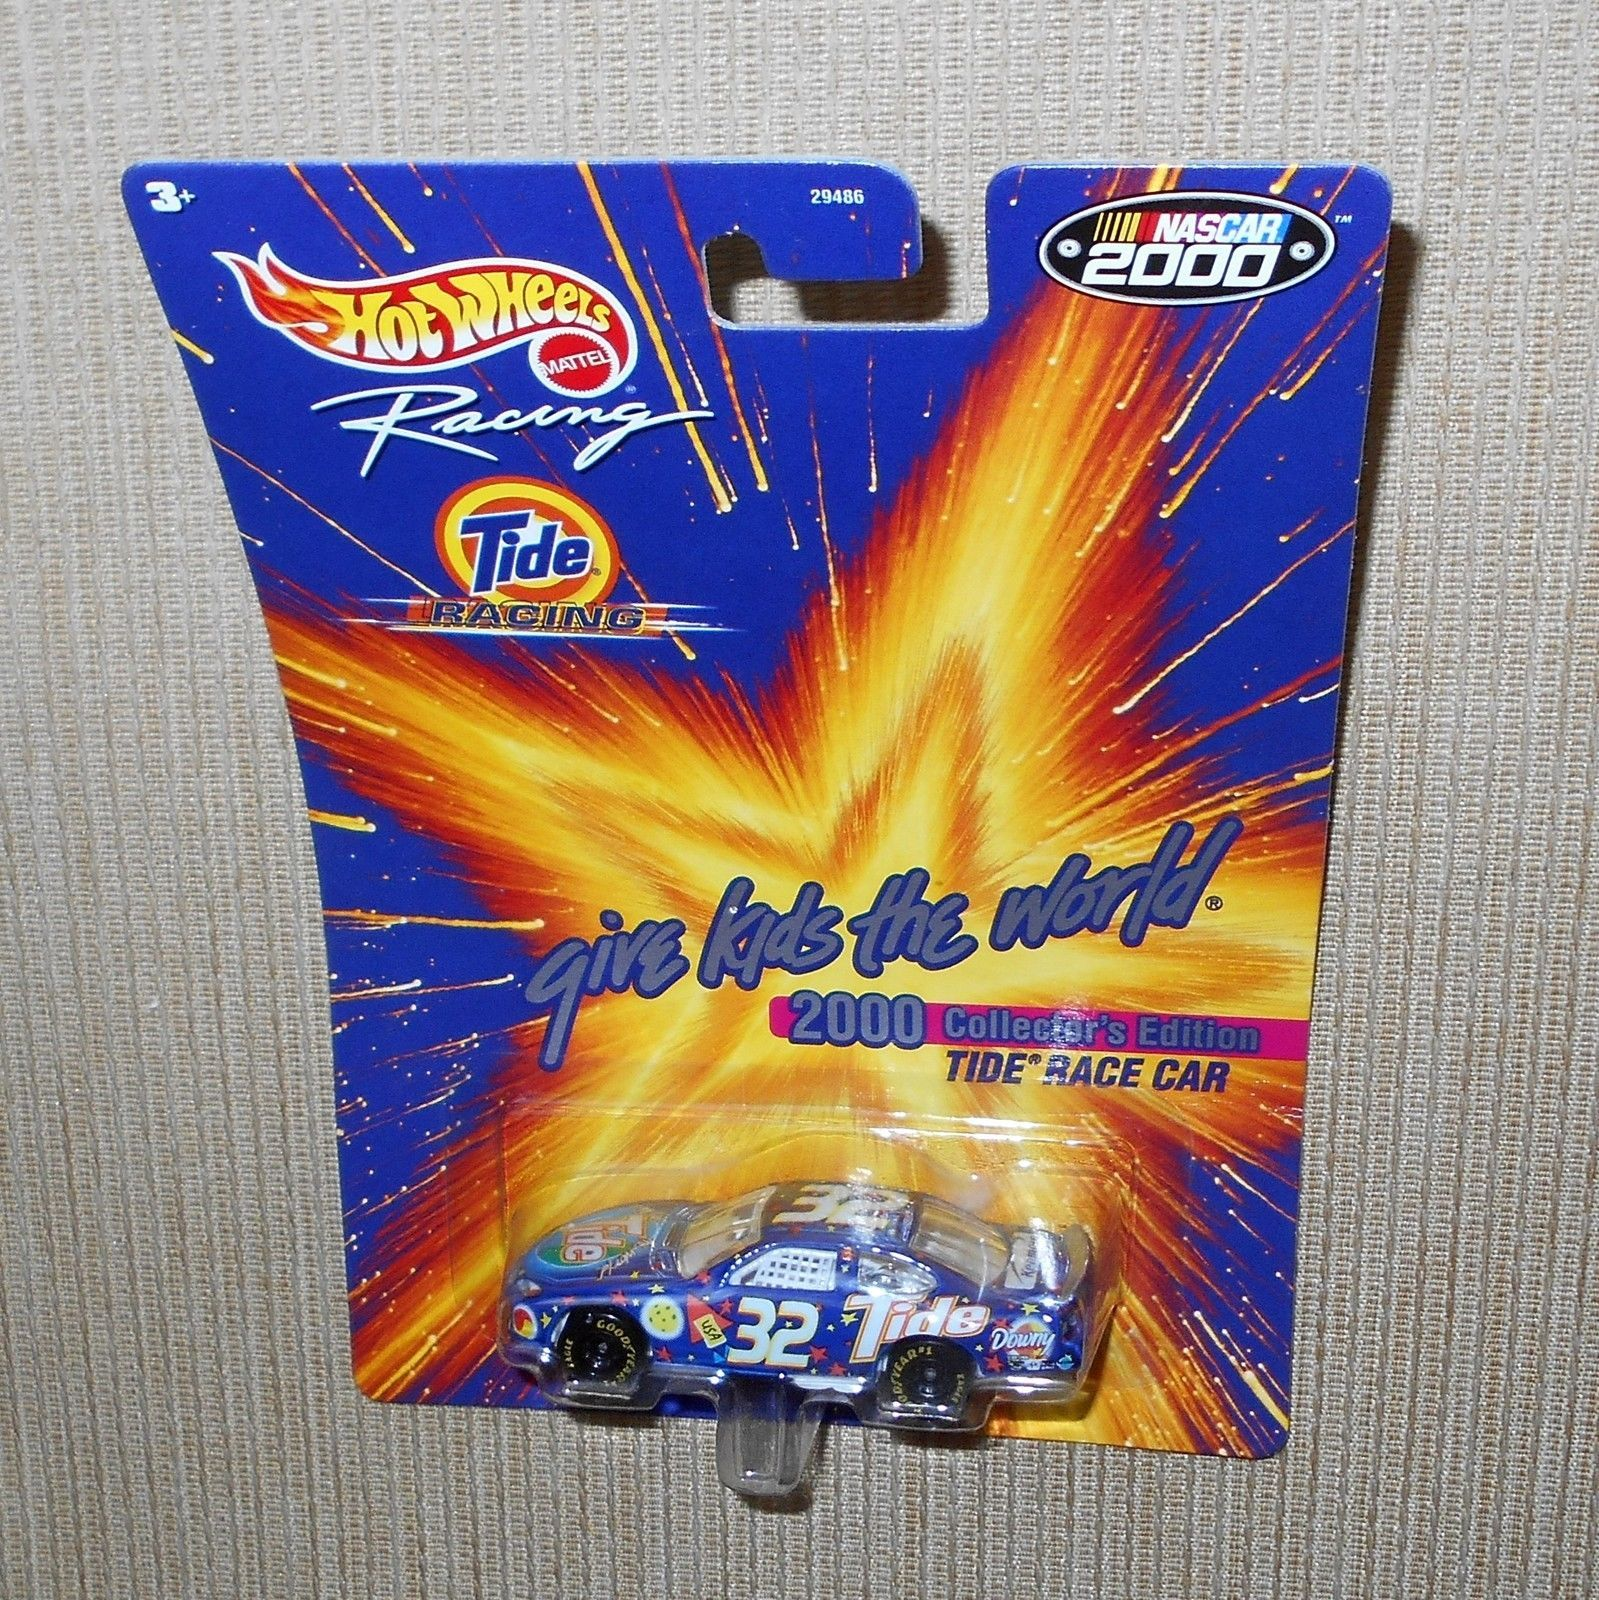 Hot Wheels 1:64 Scale Nascar 2000 Series TIDE COLLECTOR/'S EDITION CAR #32